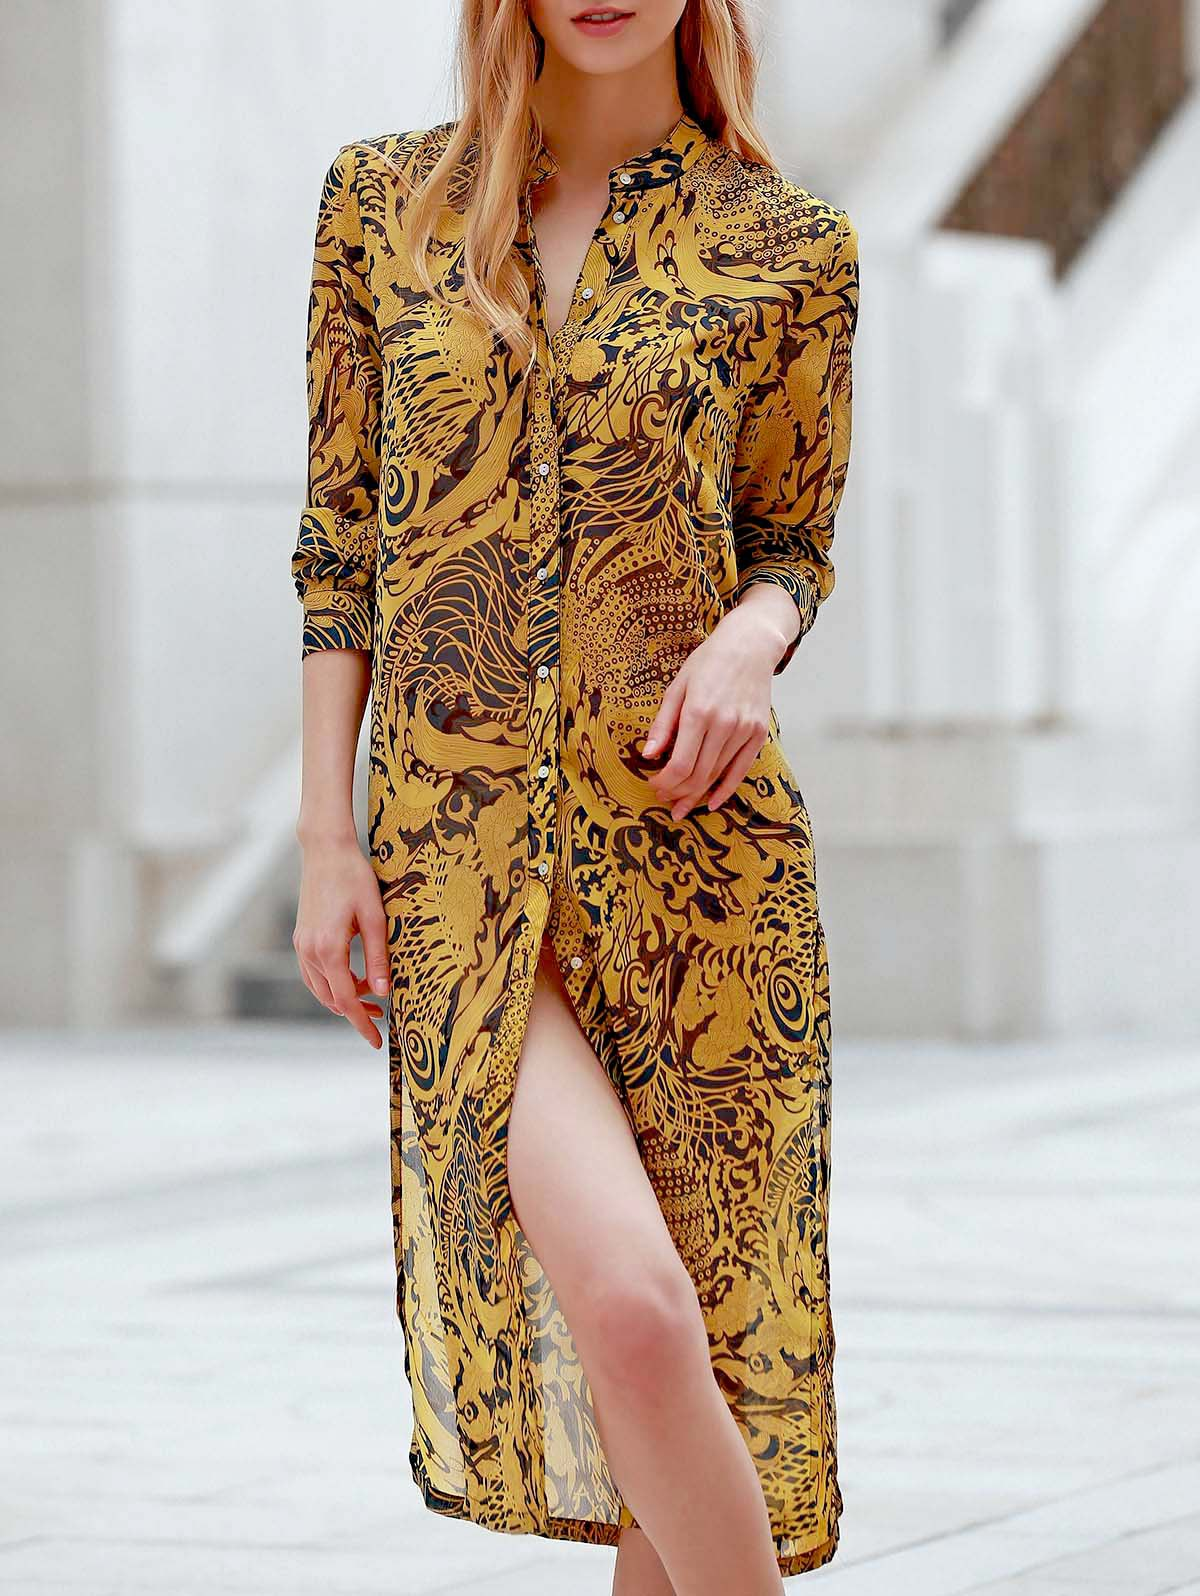 Vintage Style Stand-Up Collar Long Sleeve Printed Slit Women's Shirt Dress - BLUISH YELLOW L